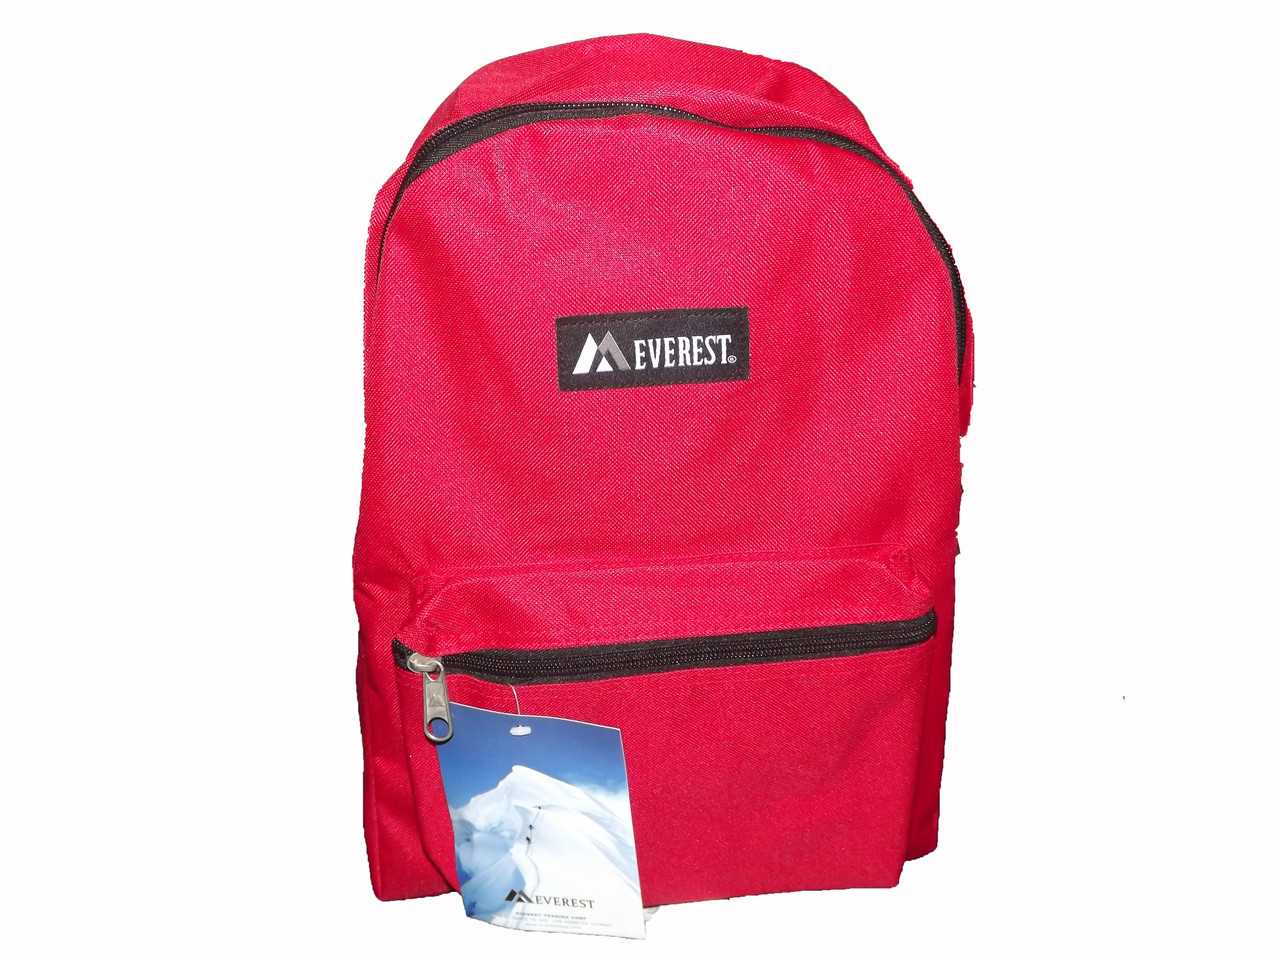 898ab28bfb Everest Red Basic Backpack - Curious Bazaar